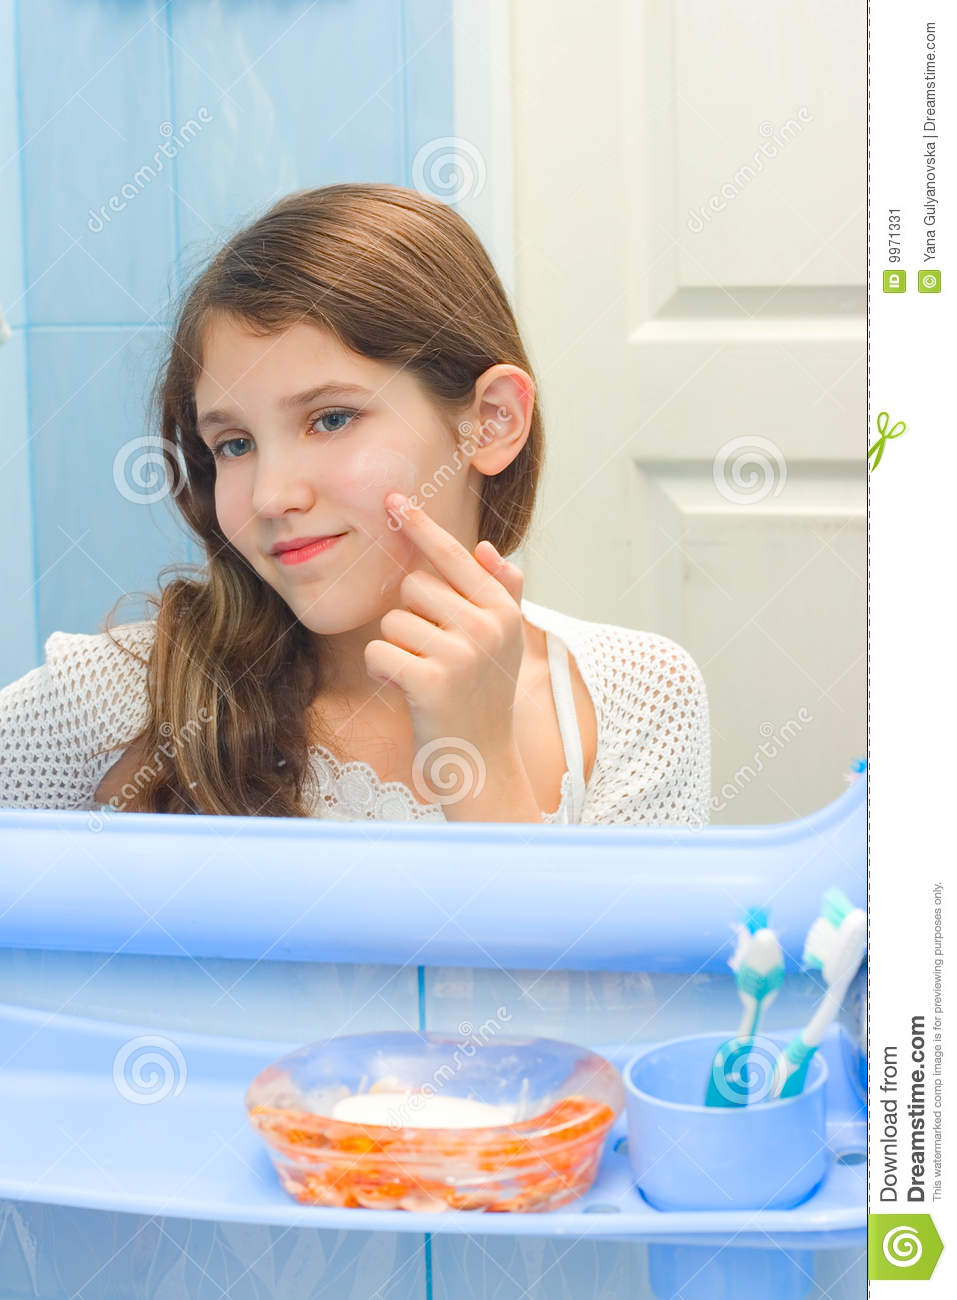 Girl Using Bathroom Teen Girl In Bathroom Stock Image